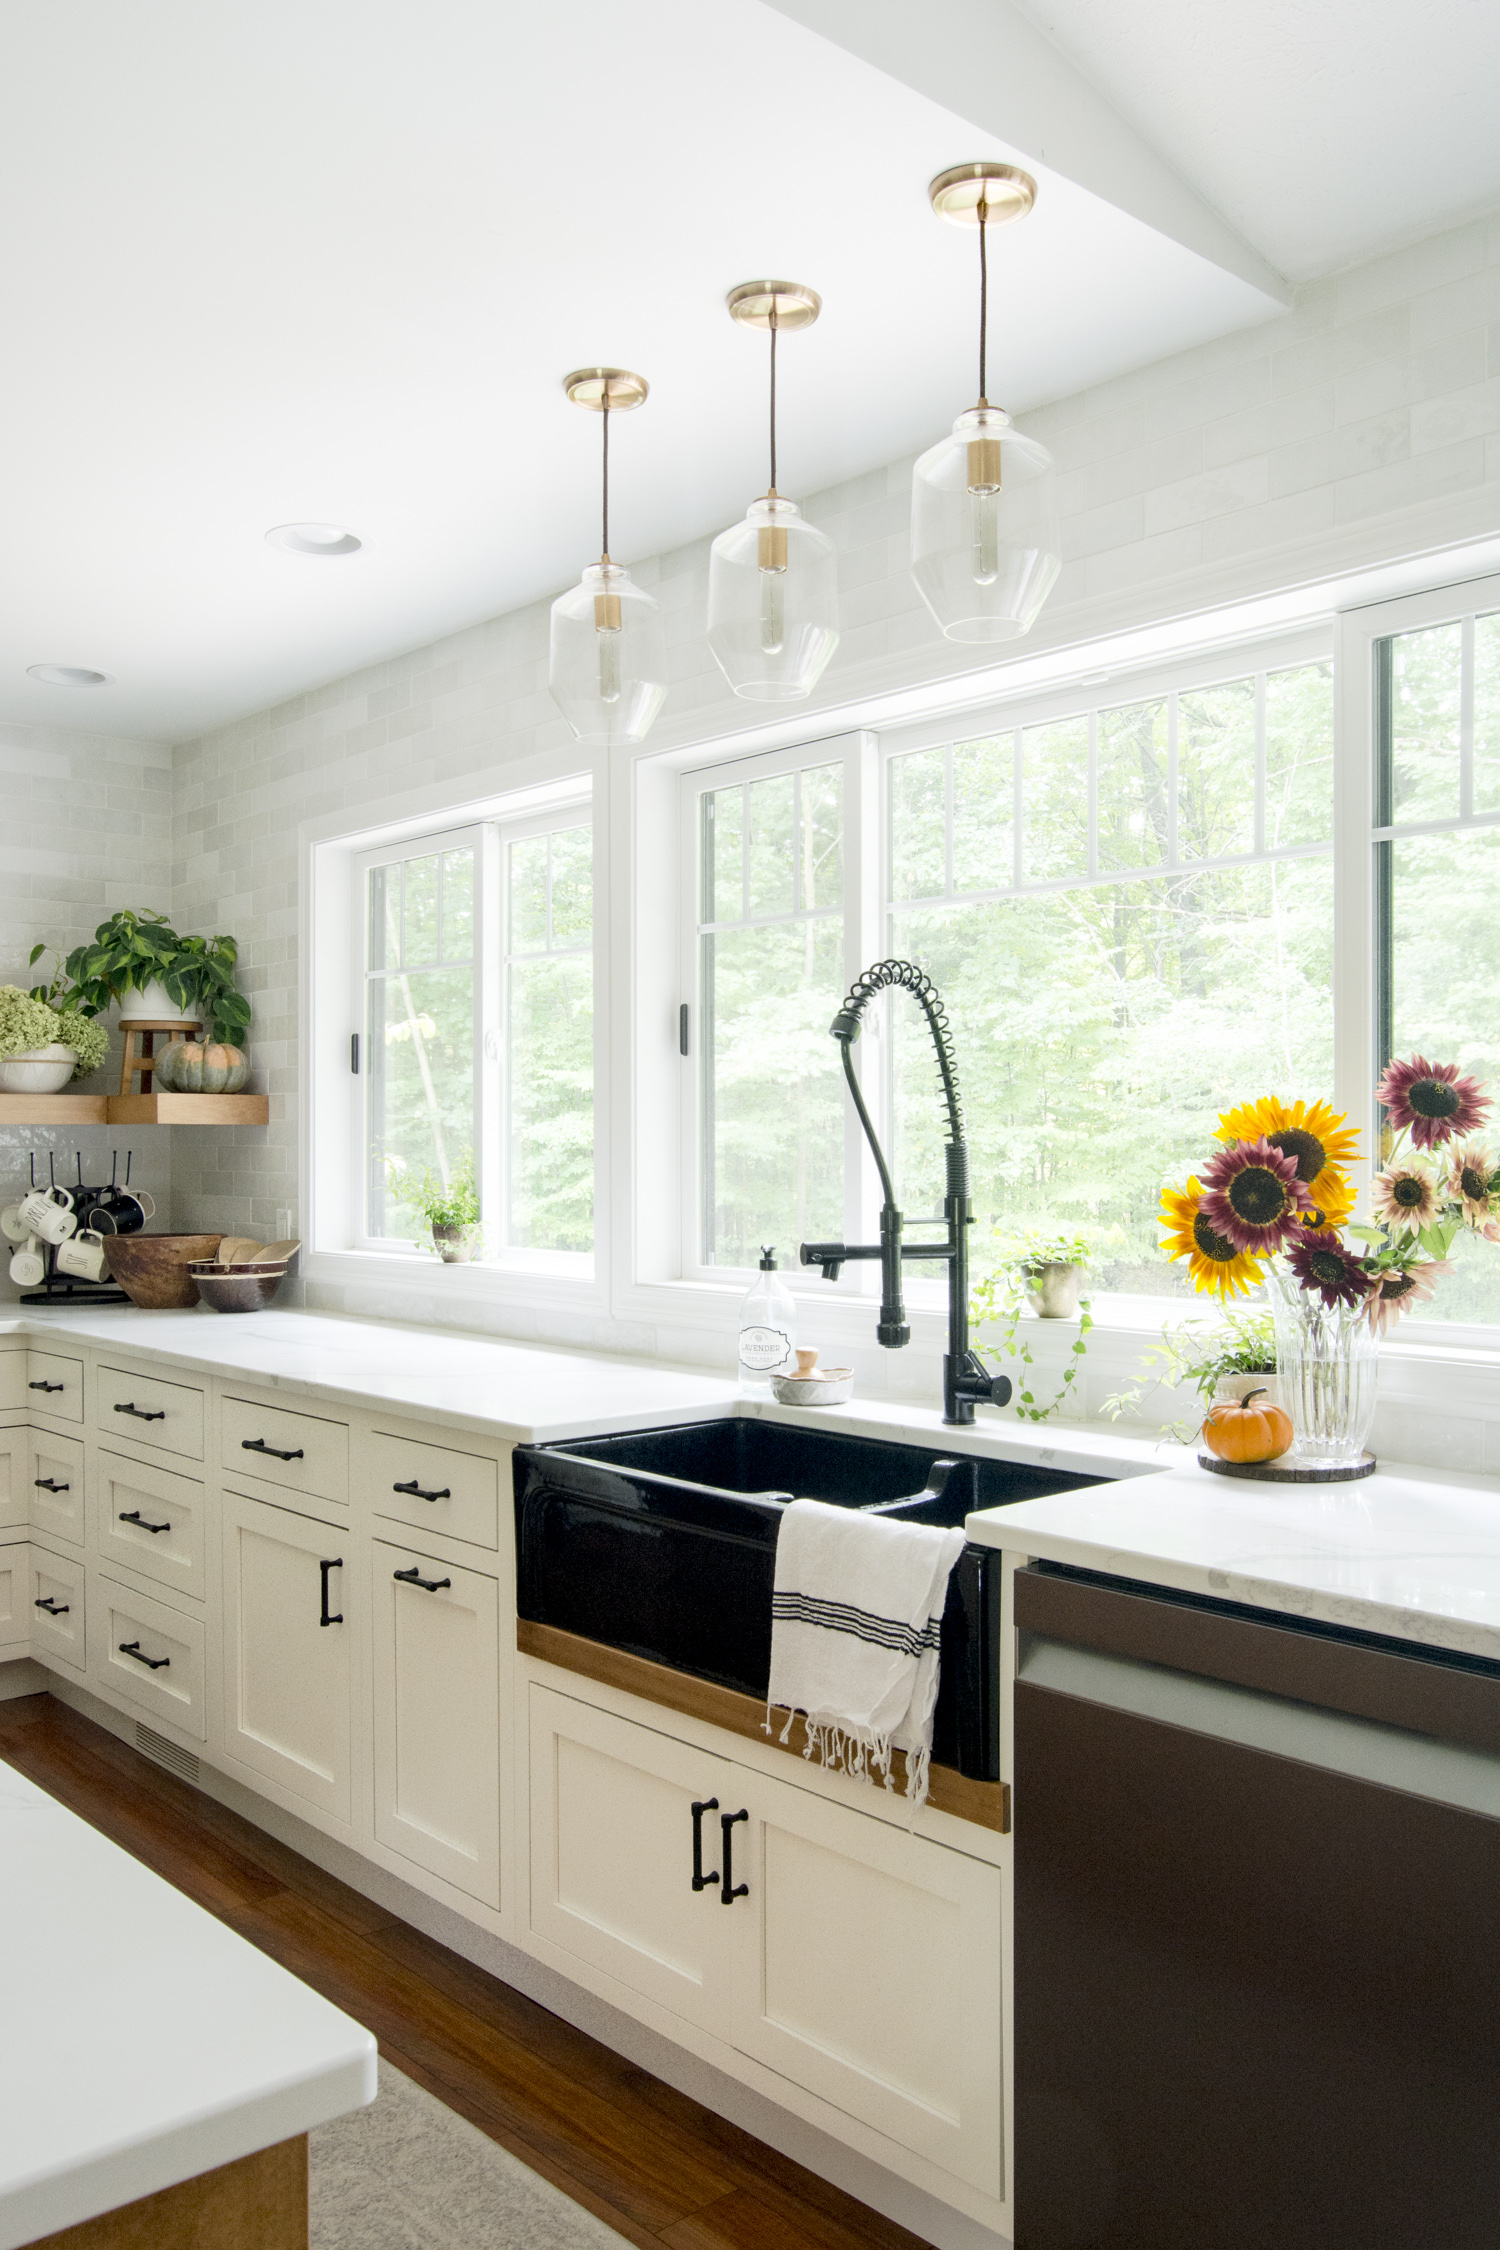 Love the black farmhouse sink and trip of glass pendant lights kellyelko.com #kitchen #kitchenlighting #lighting #farmhousesink #farmhousekitchen #farmhousedecor #whitekitchen #interiordesign